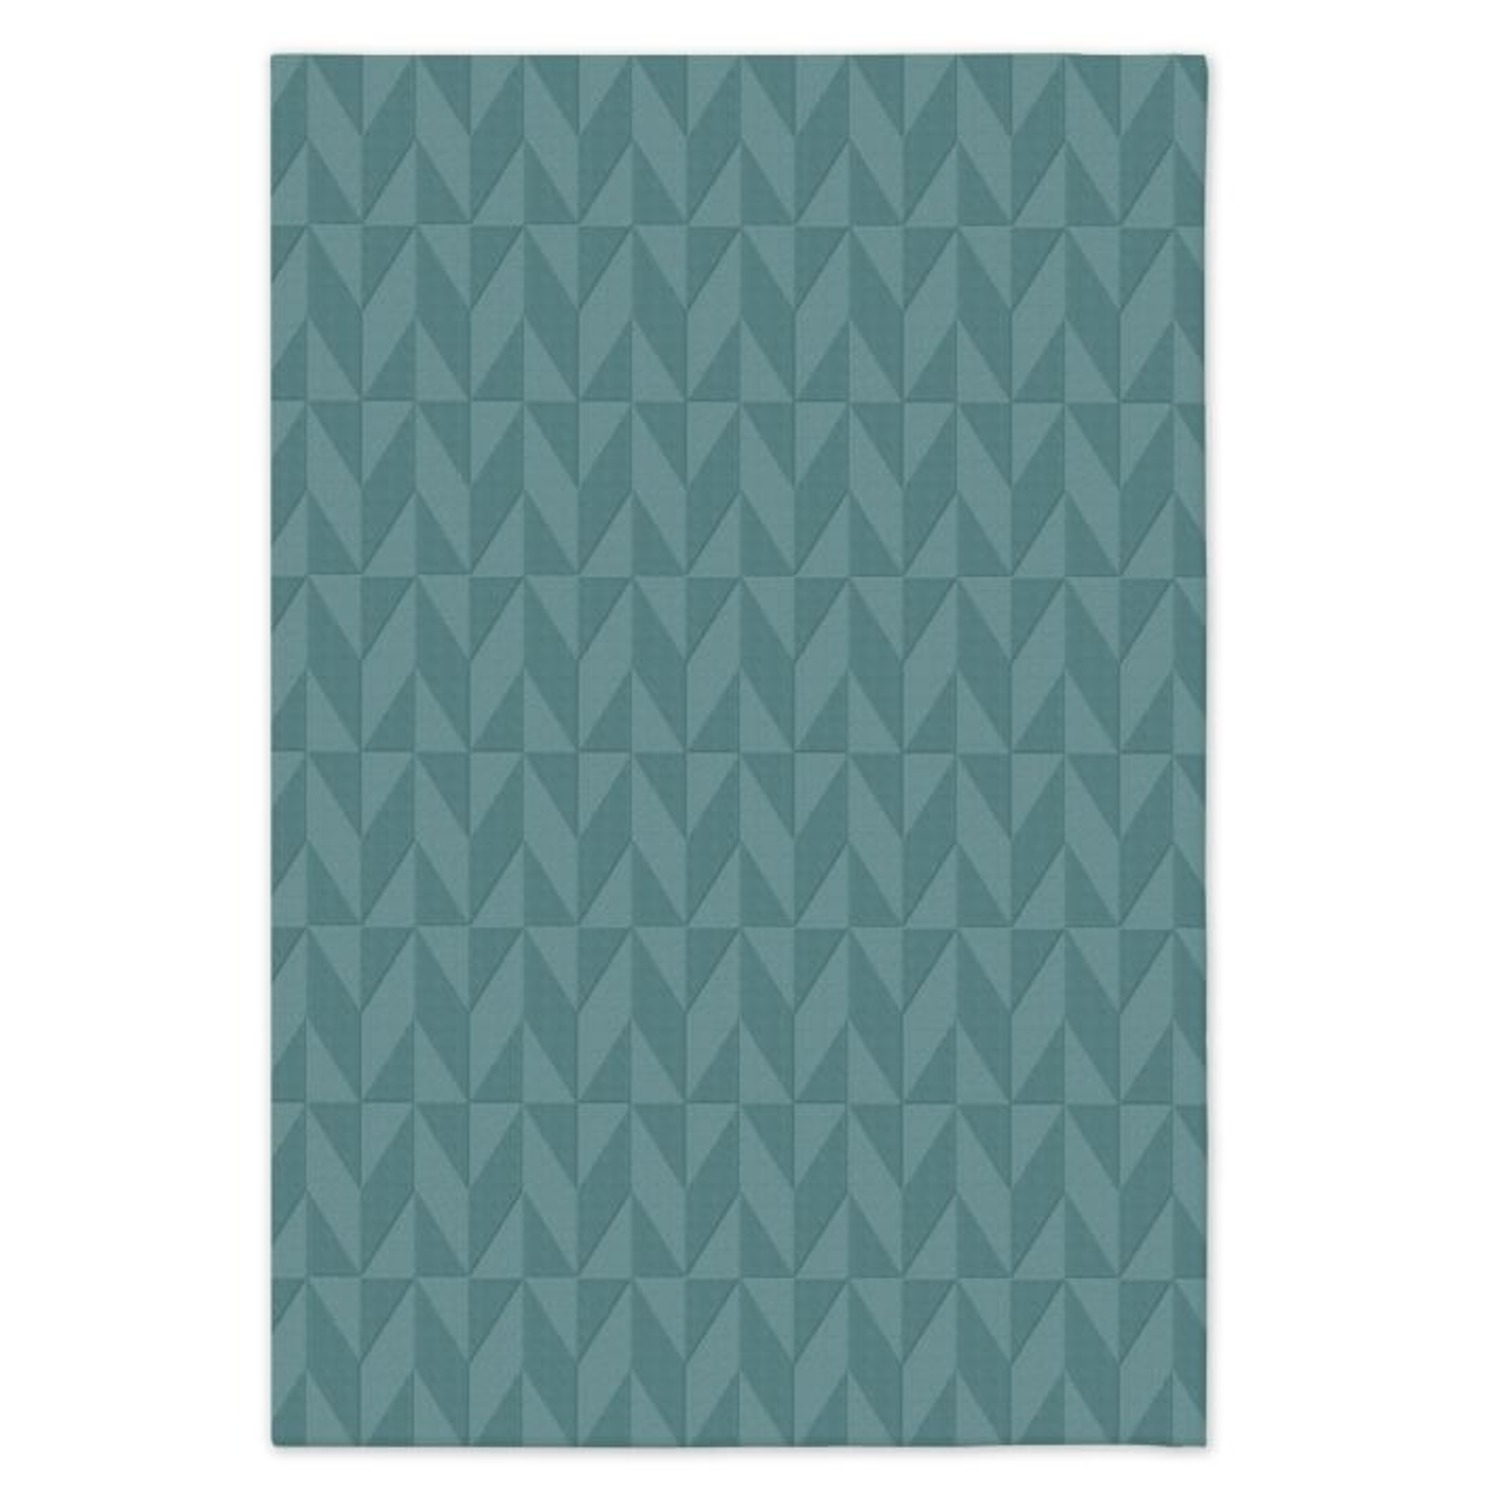 West Elm SPO Andes Rug, True Blue - image-1